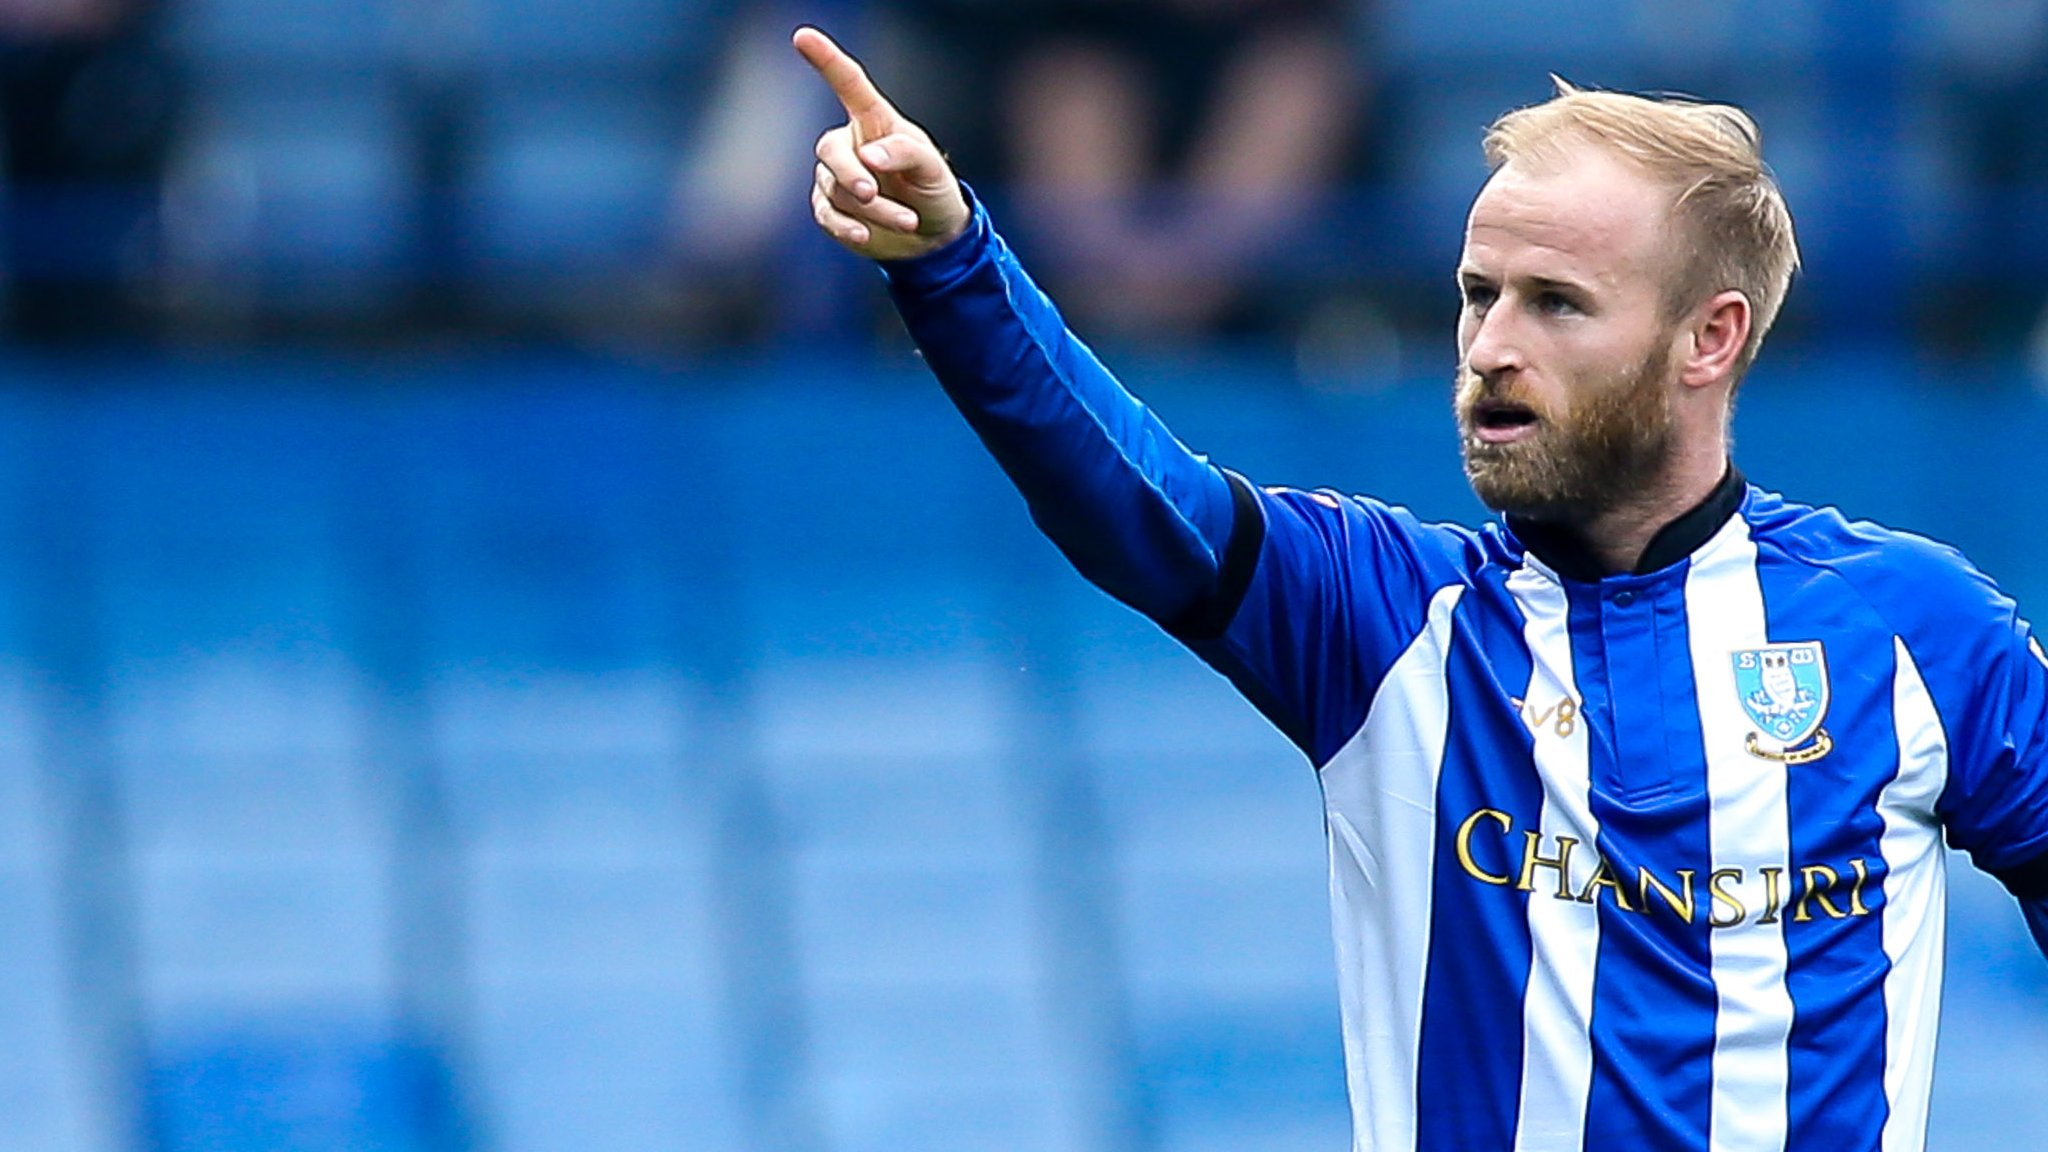 Sheffield Wednesday 2-0 Bristol City: Barry Bannan scores one & makes another